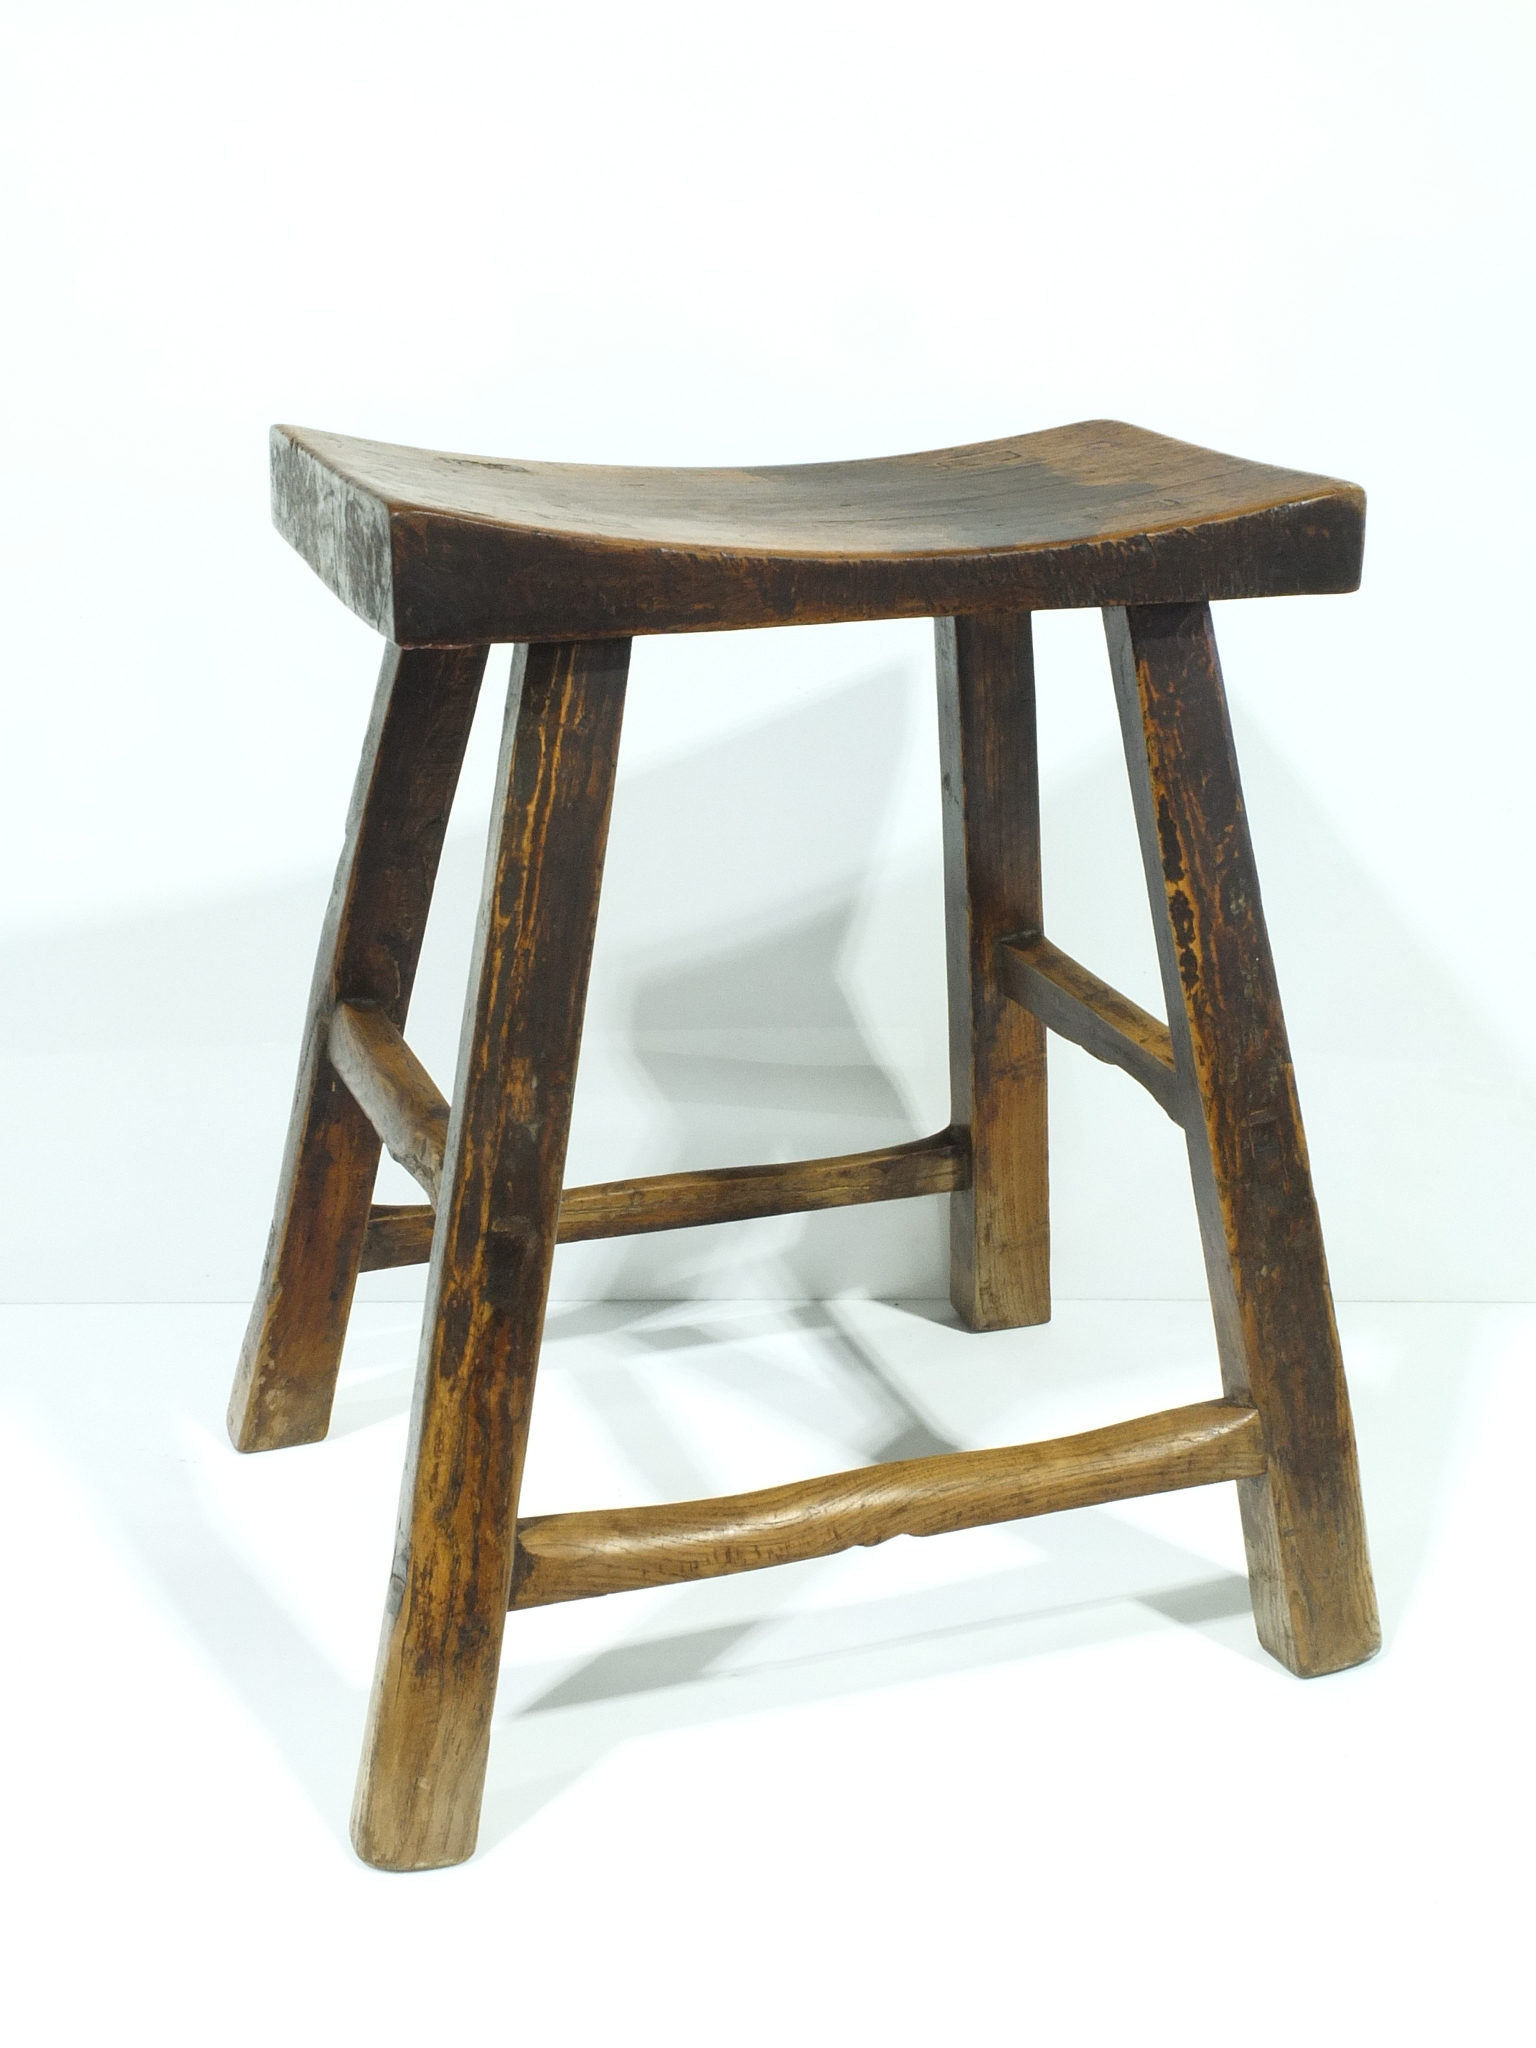 'Chinese Elm Stool 20th Century'